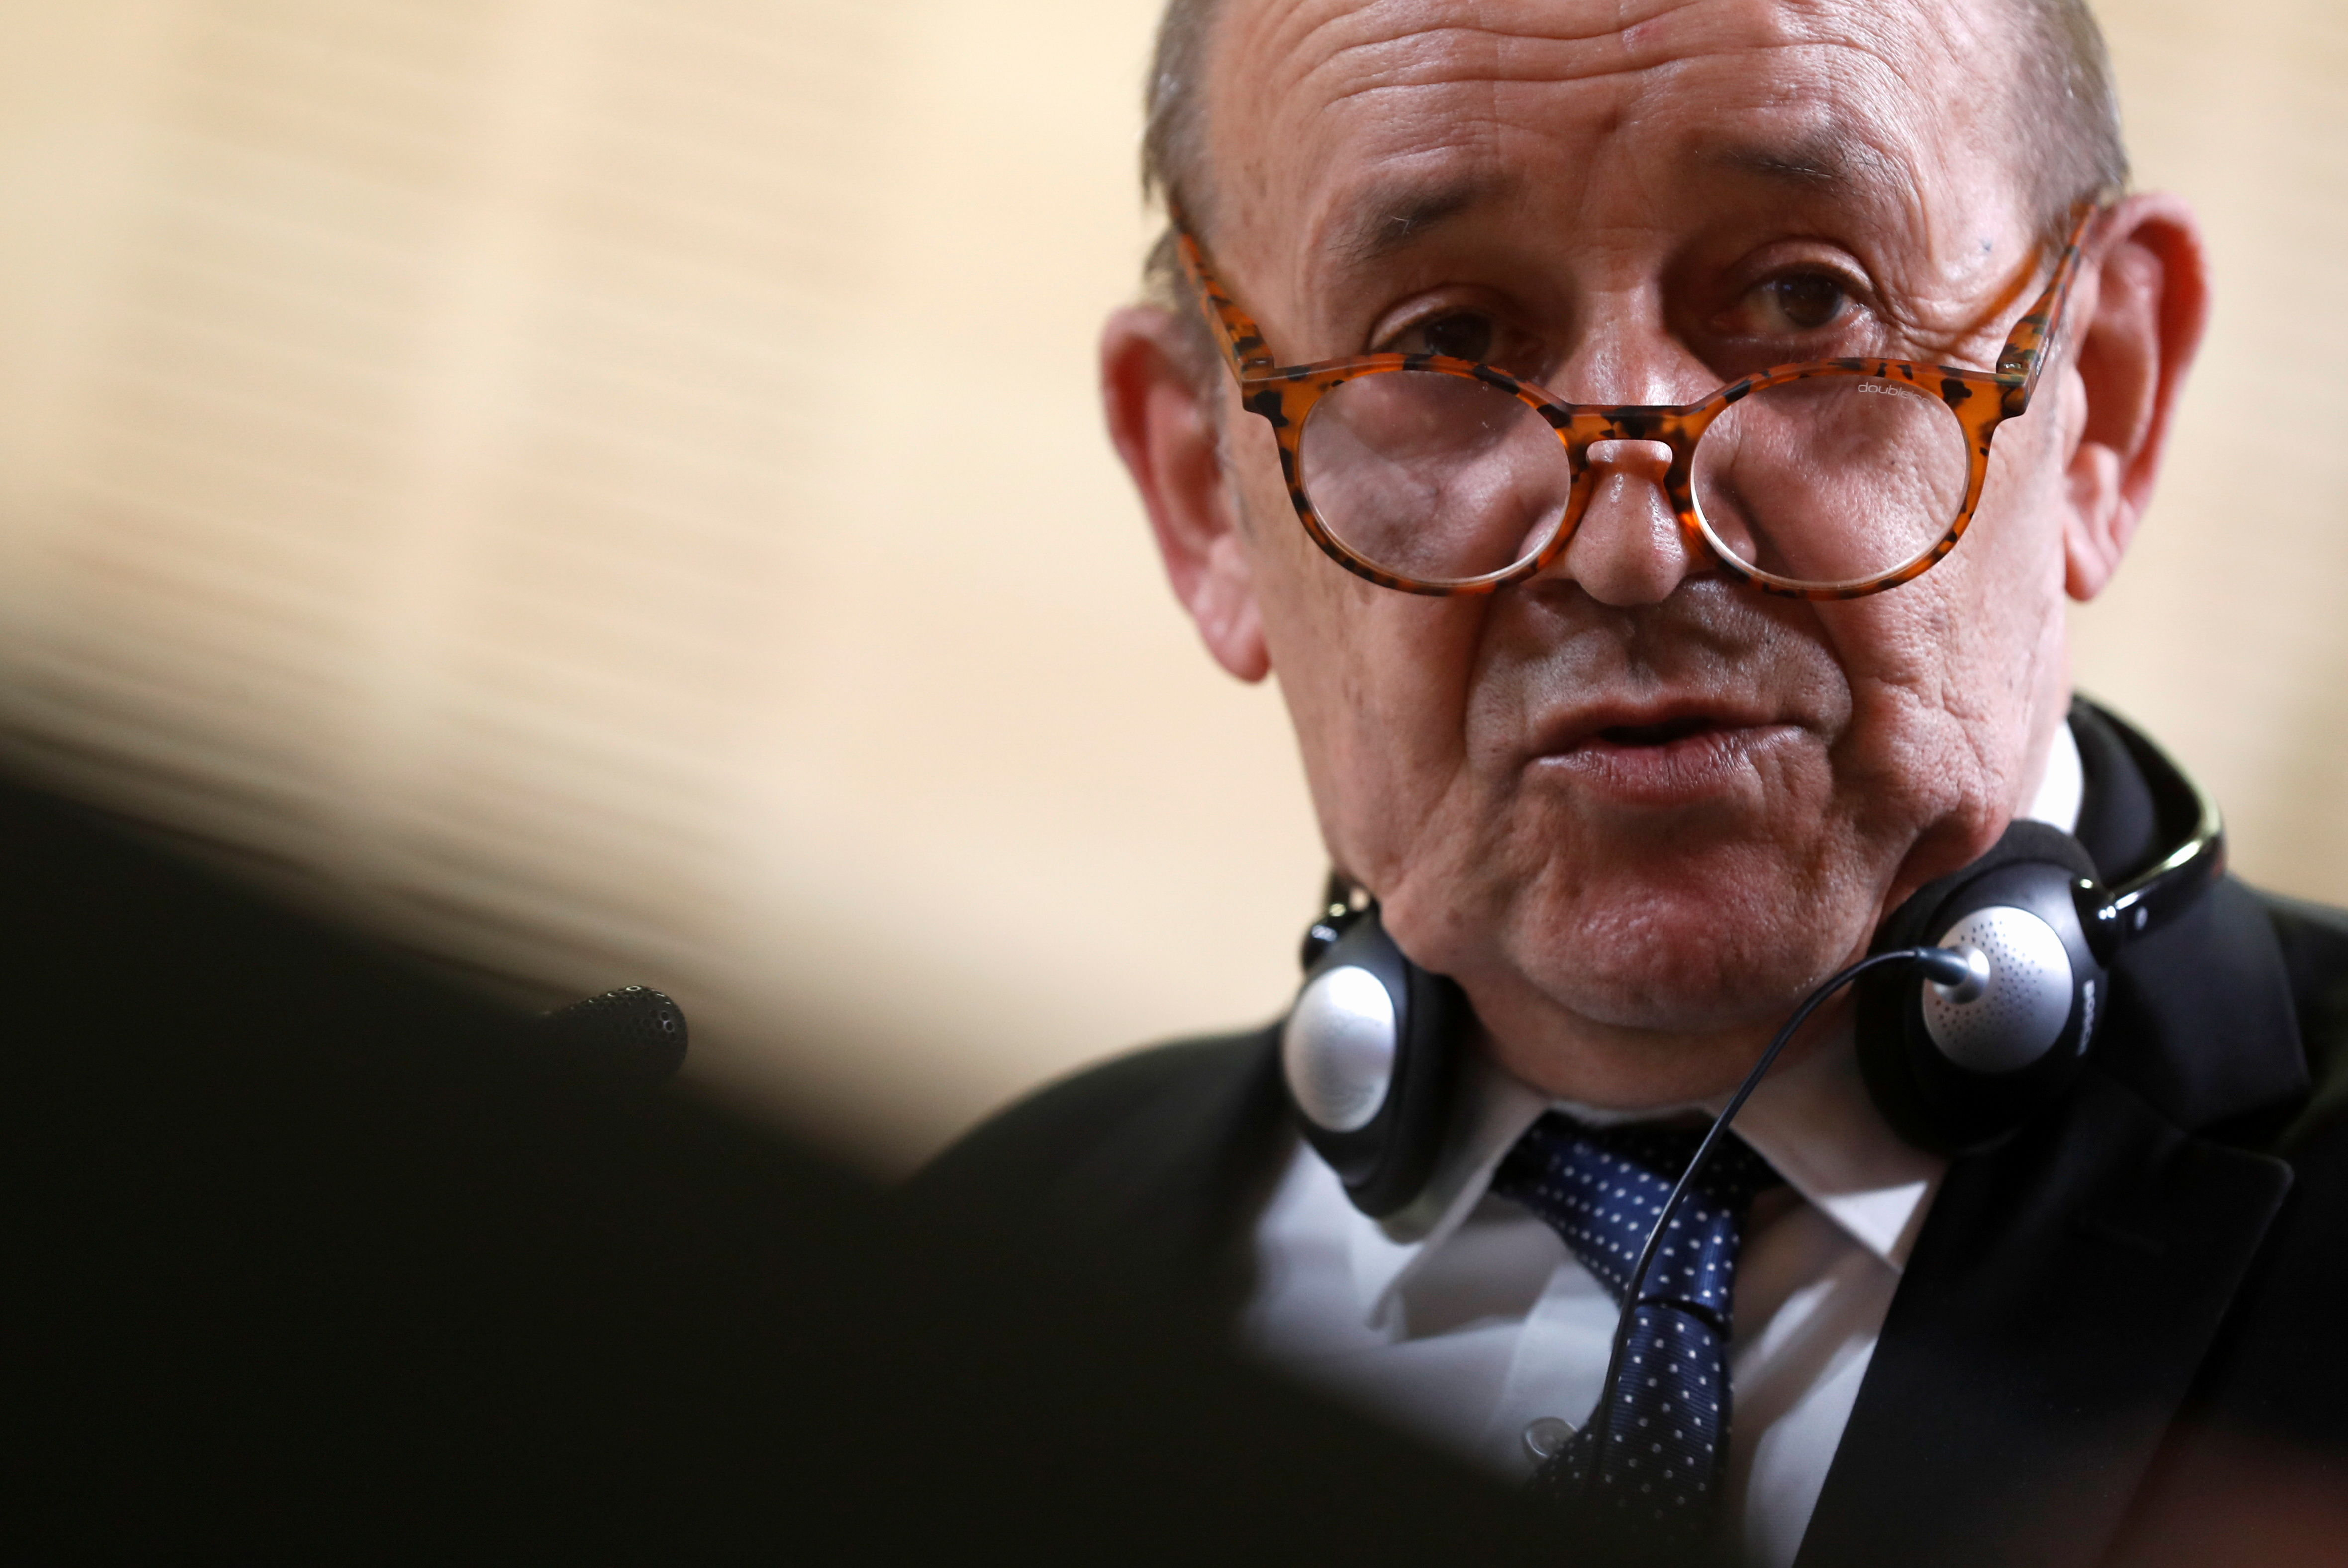 French Foreign Minister Jean-Yves Le Drian speaks during a joint news conference with Spanish Foreign Minister Arancha Gonzalez Laya after their meeting at the Foreign Ministry in Madrid, Spain, July 9, 2021. REUTERS/Susana Vera